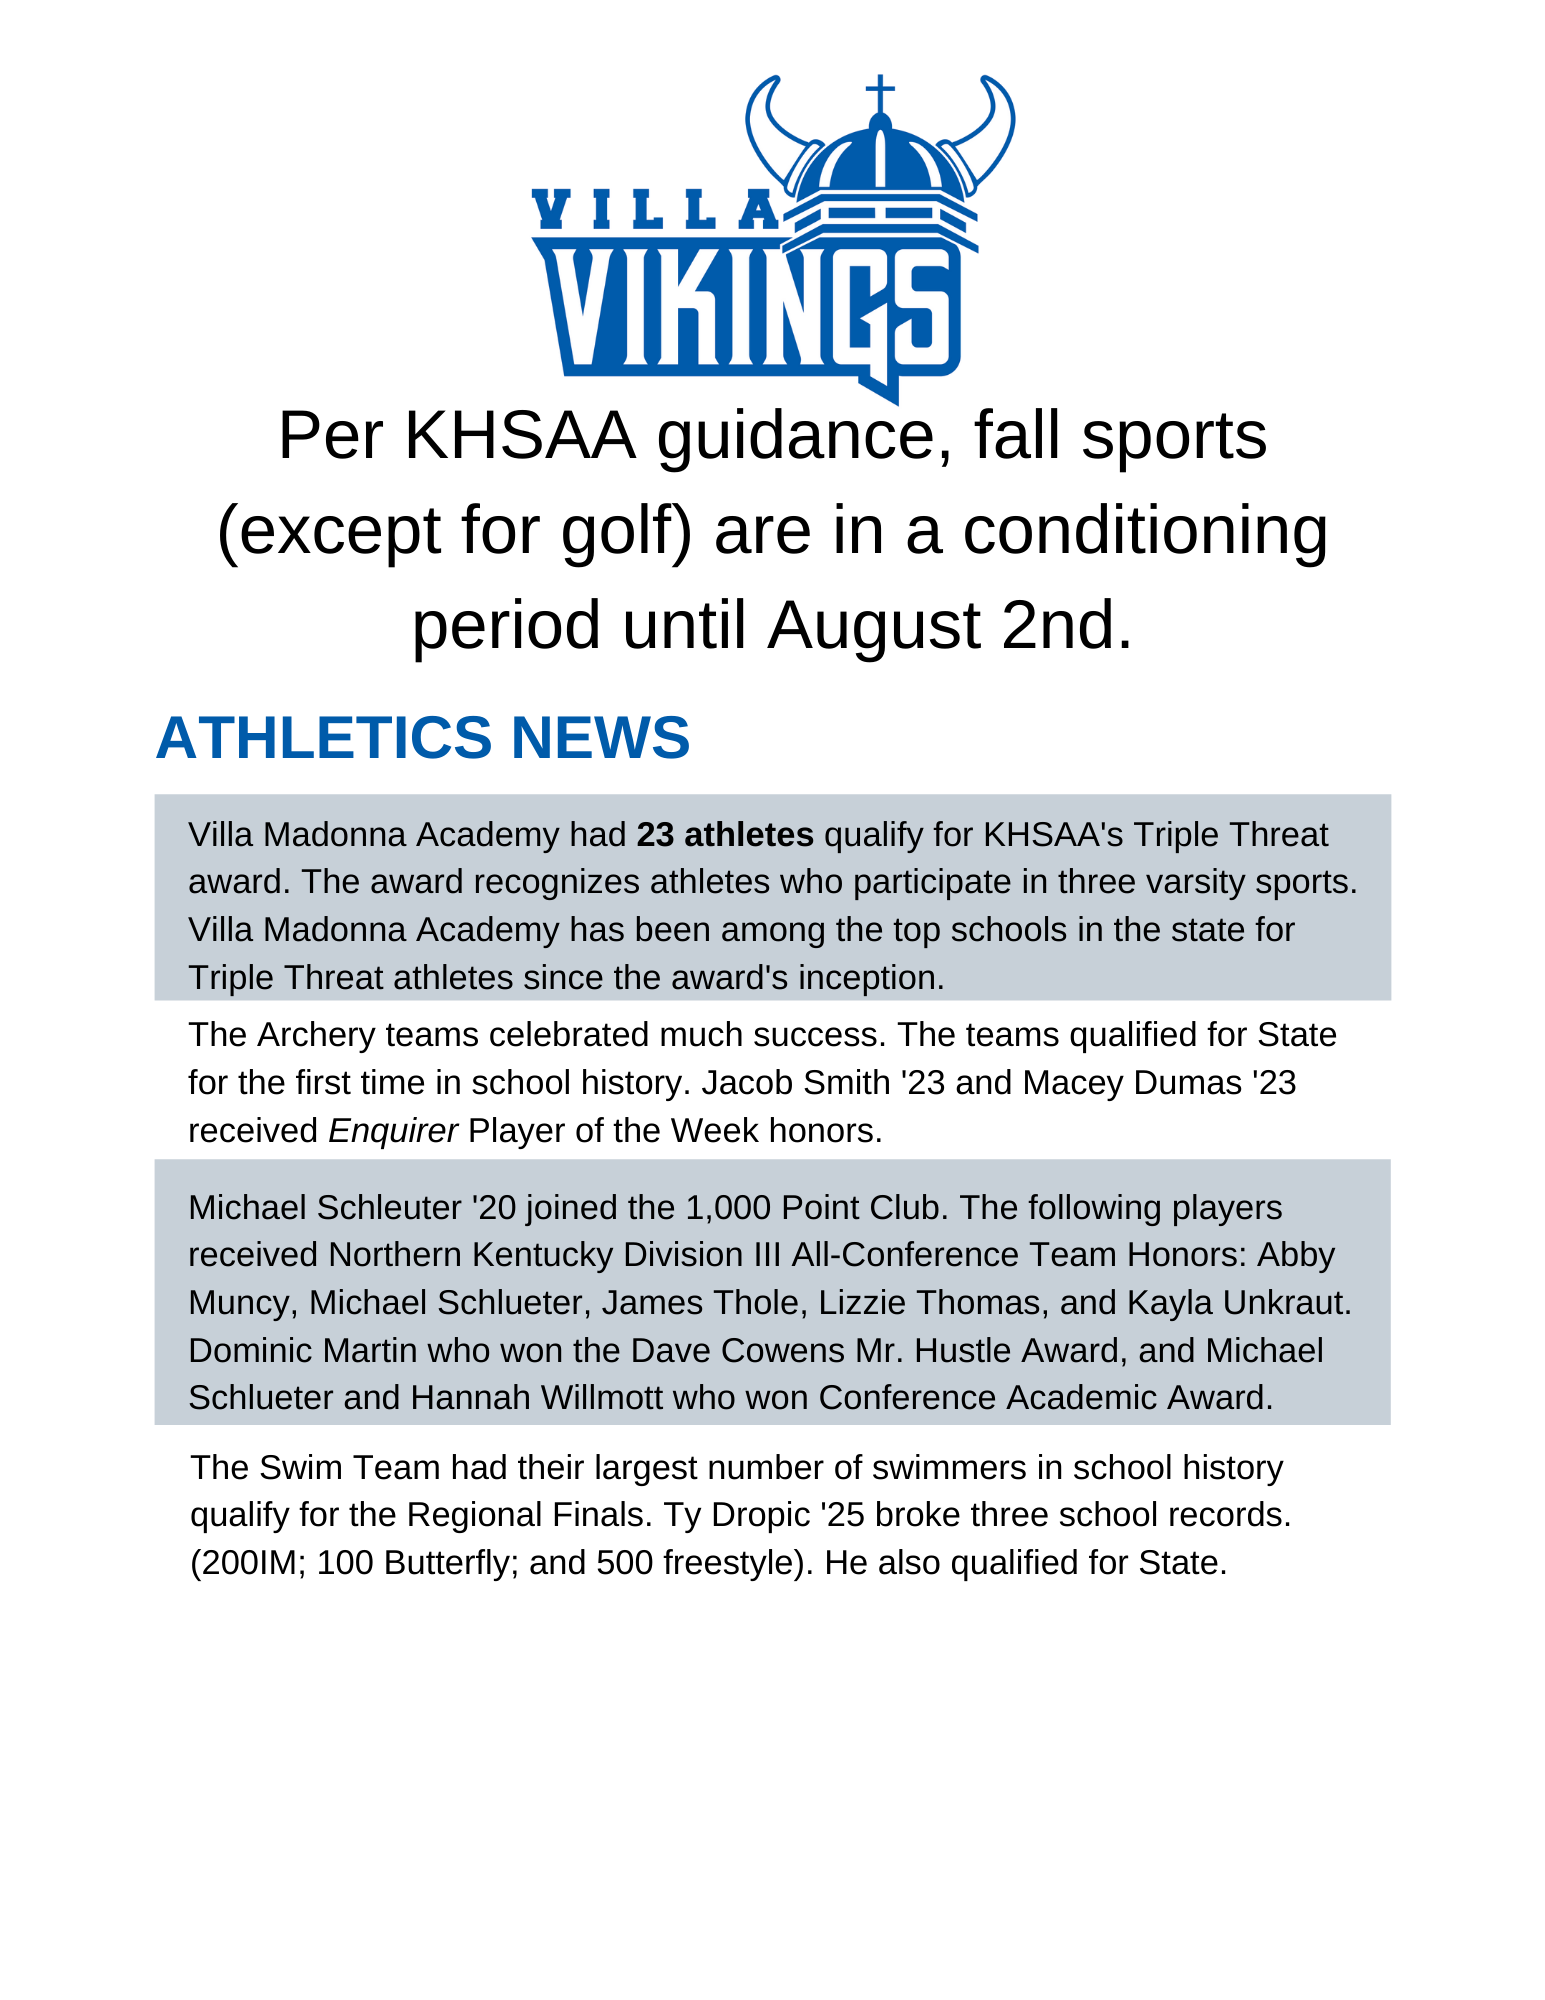 Copy_of_athletic_news2-4.png